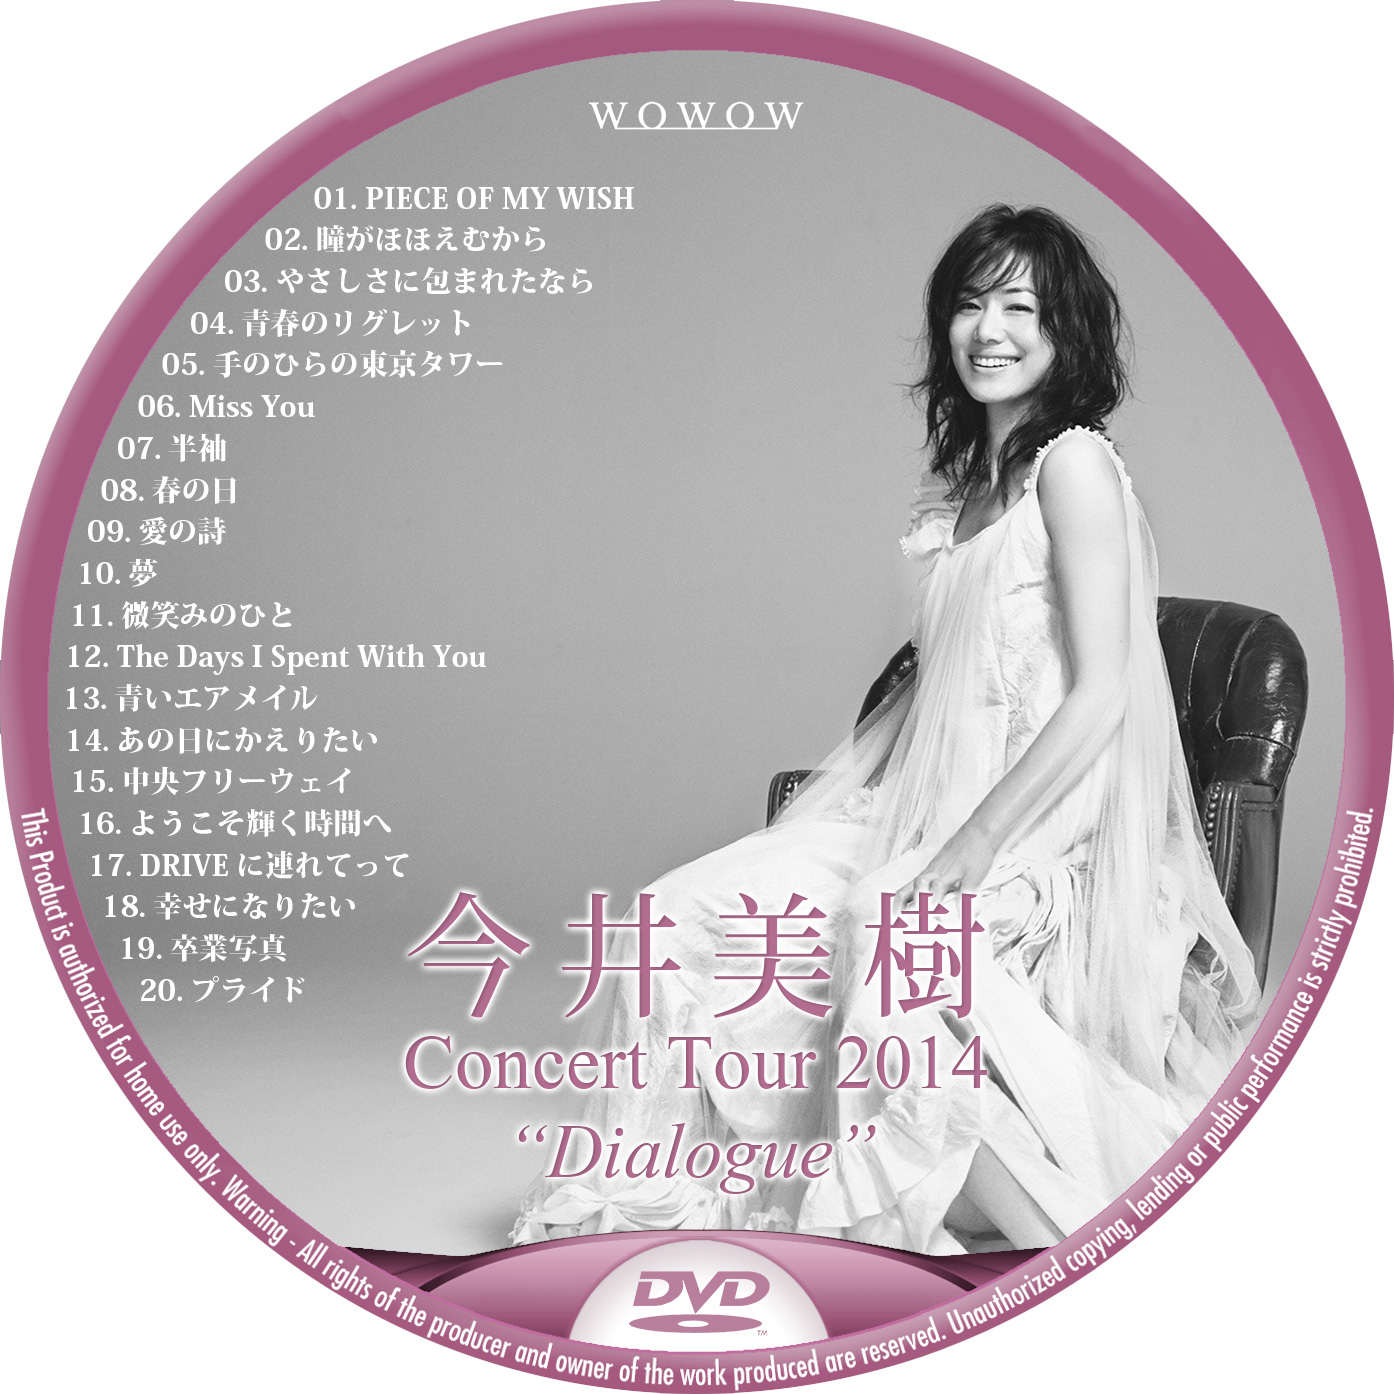 今井美樹 CONCERT TOUR 2014 Dialogue DVDラベル